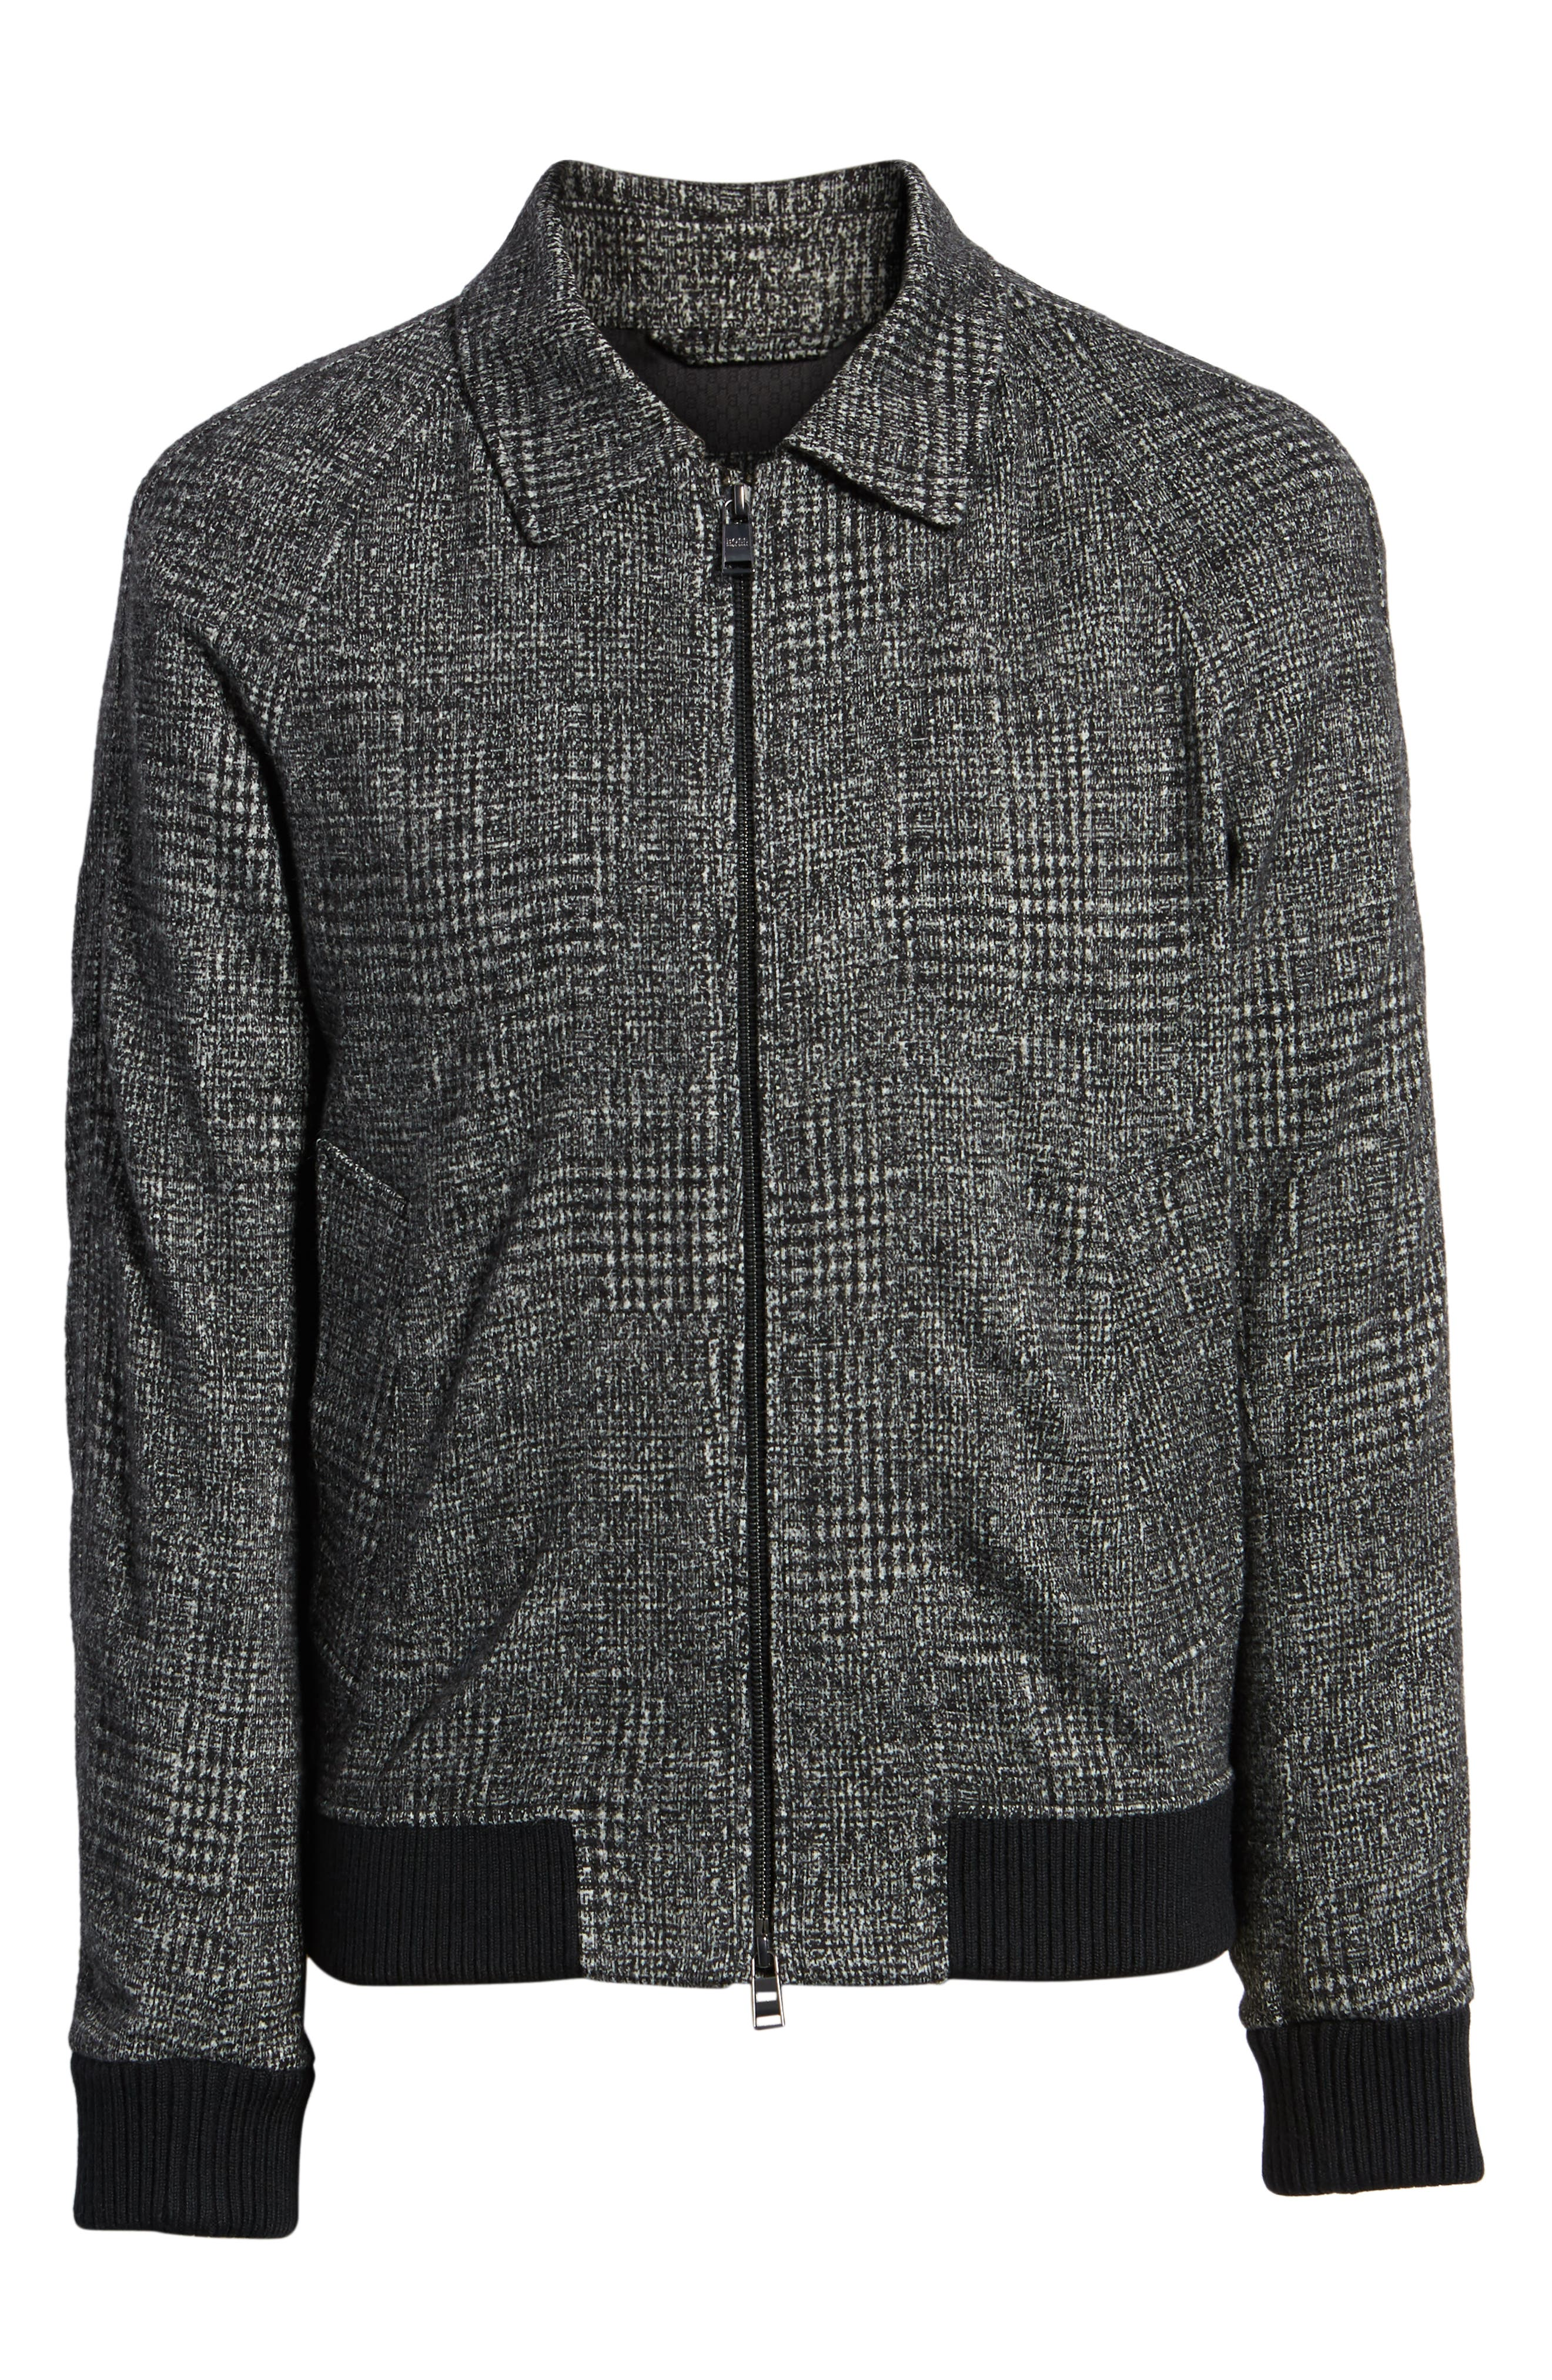 T-Cony Relaxed Fit Wool Blend Jacket,                             Alternate thumbnail 6, color,                             GREY